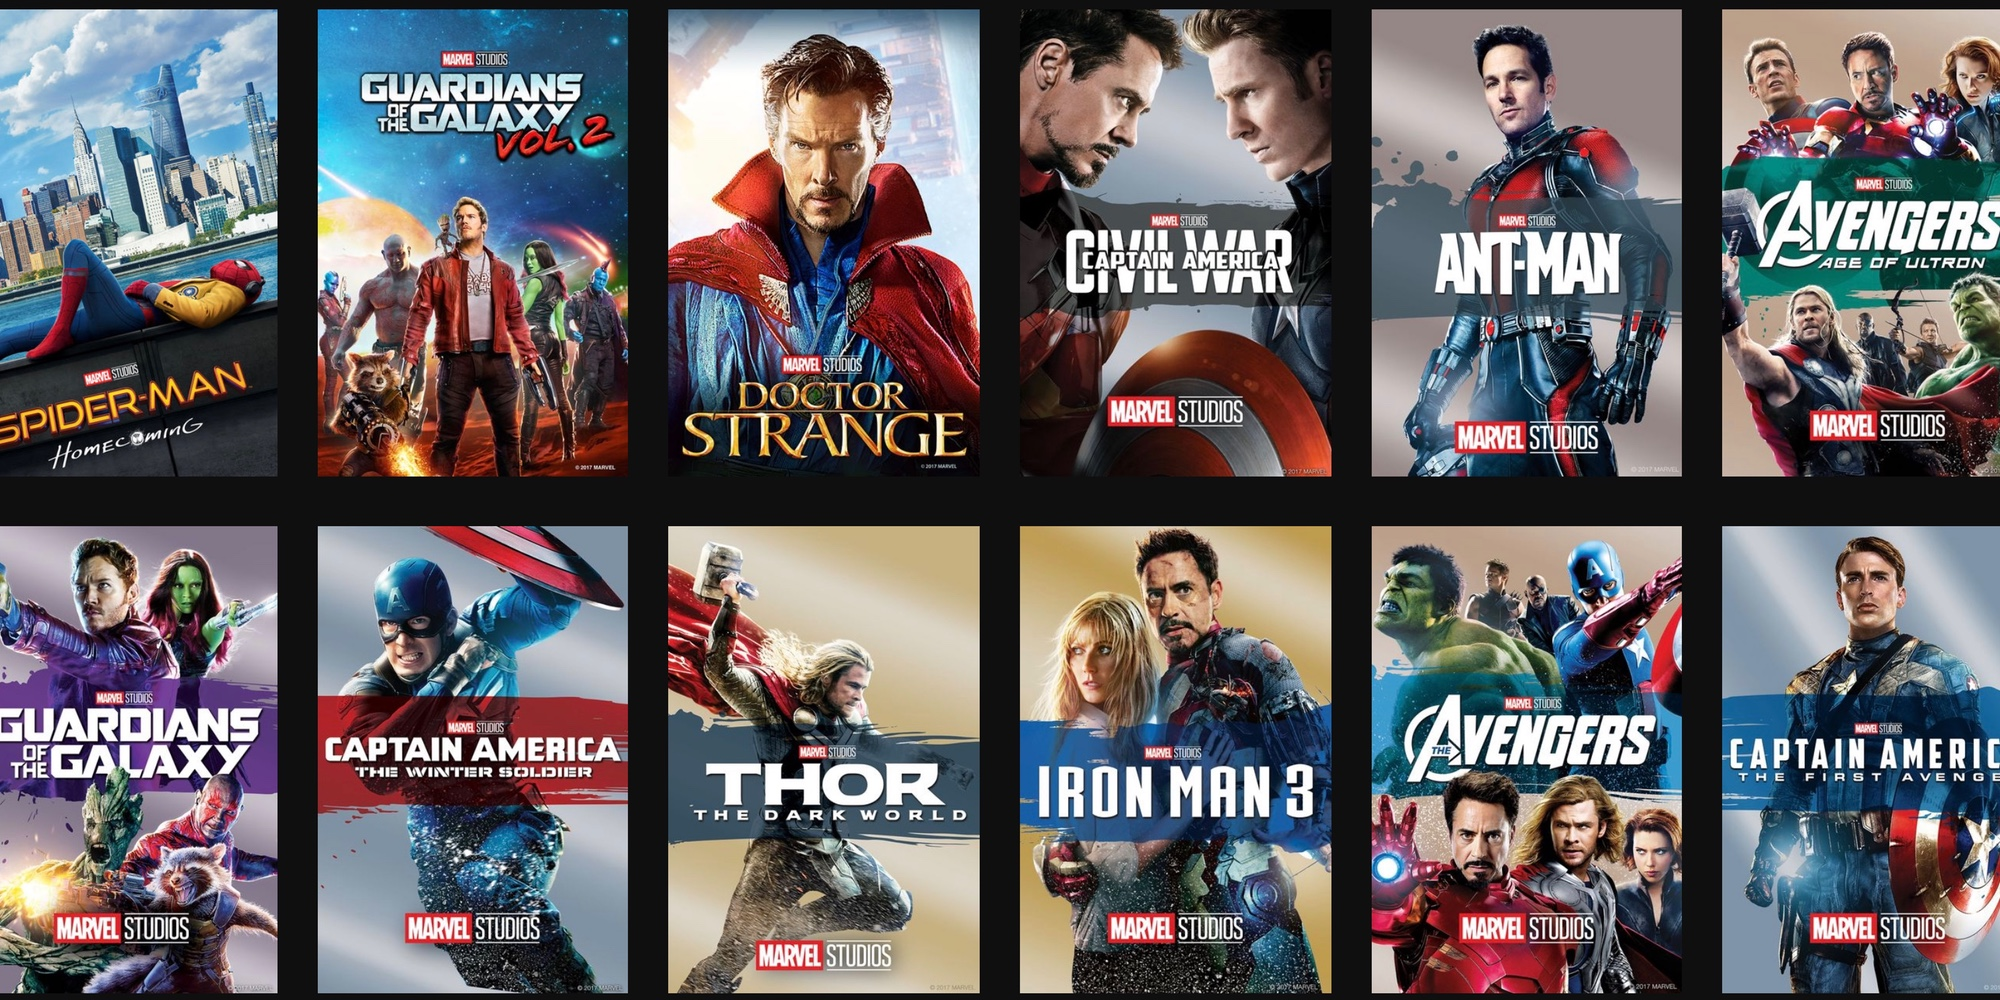 Movel Moveis Marvel Movies On Sale In Digital Hd For 15 Avengers Ant Man